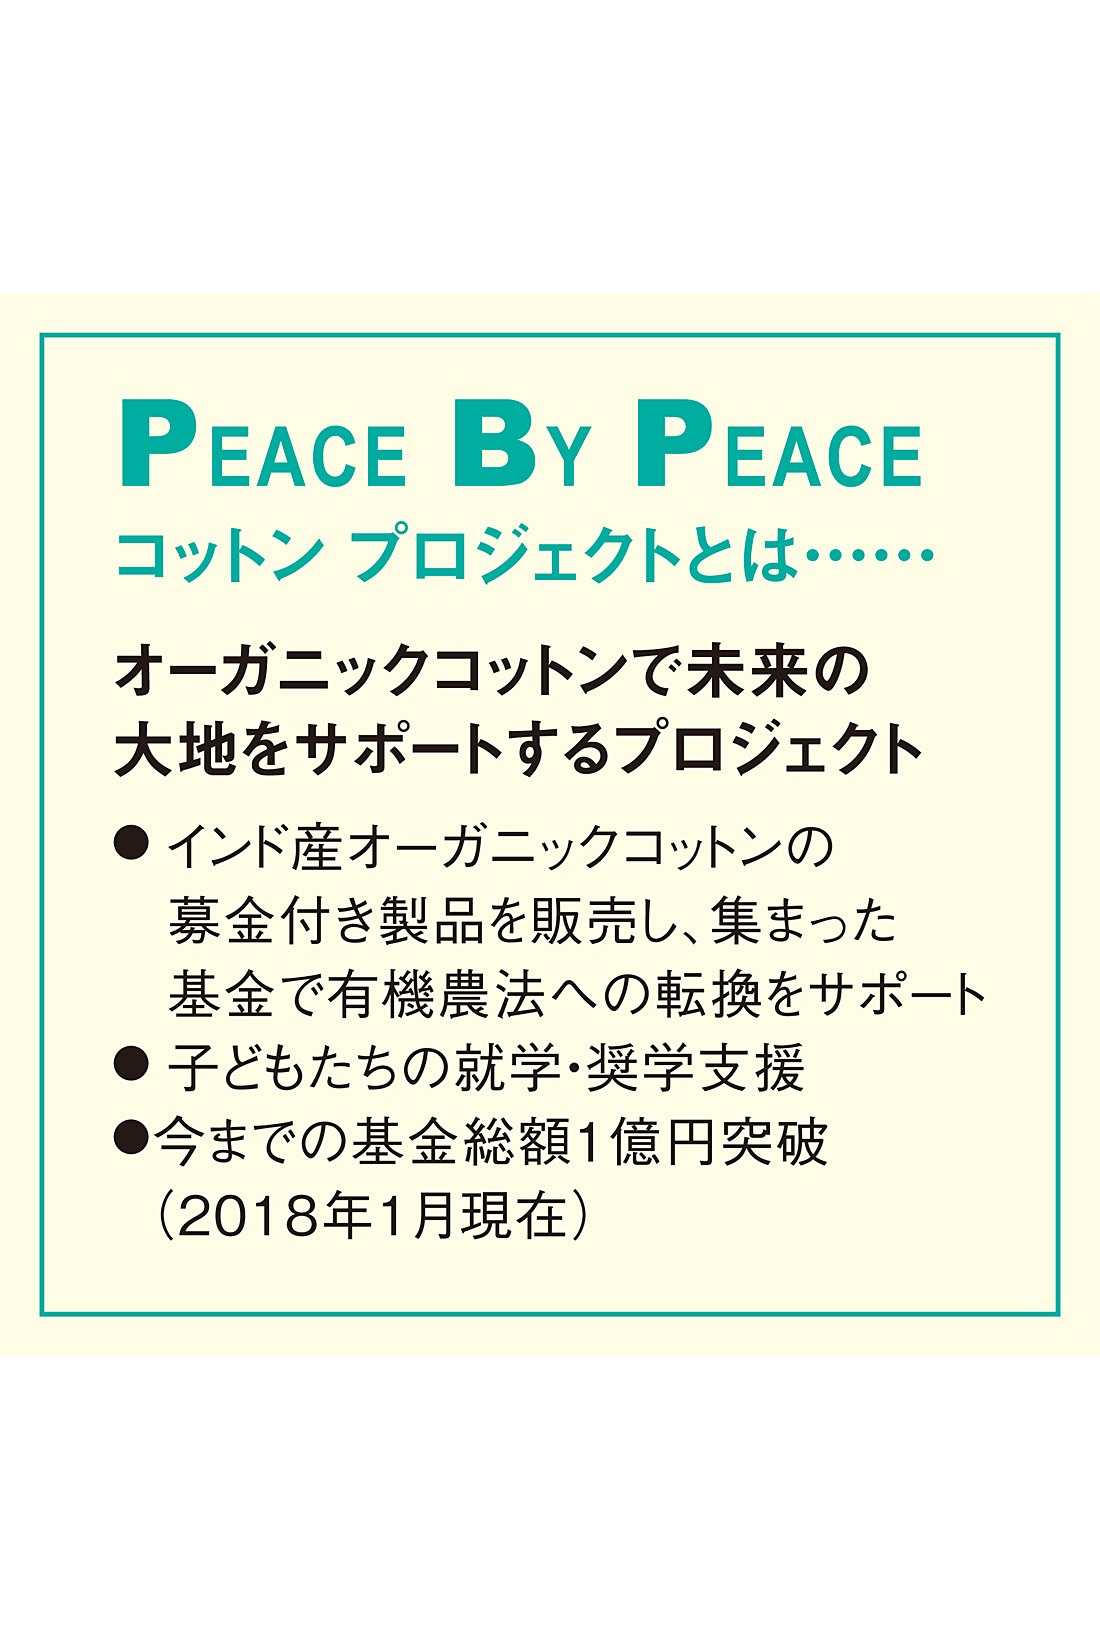 Live in comfort[リブ イン コンフォート]|Live love cotton(PEACE BY PEACE)プロジェクト リブ イン コンフォート すべてを隠しておしゃれ見えする 後ろ長めチュニック〈レッド〉